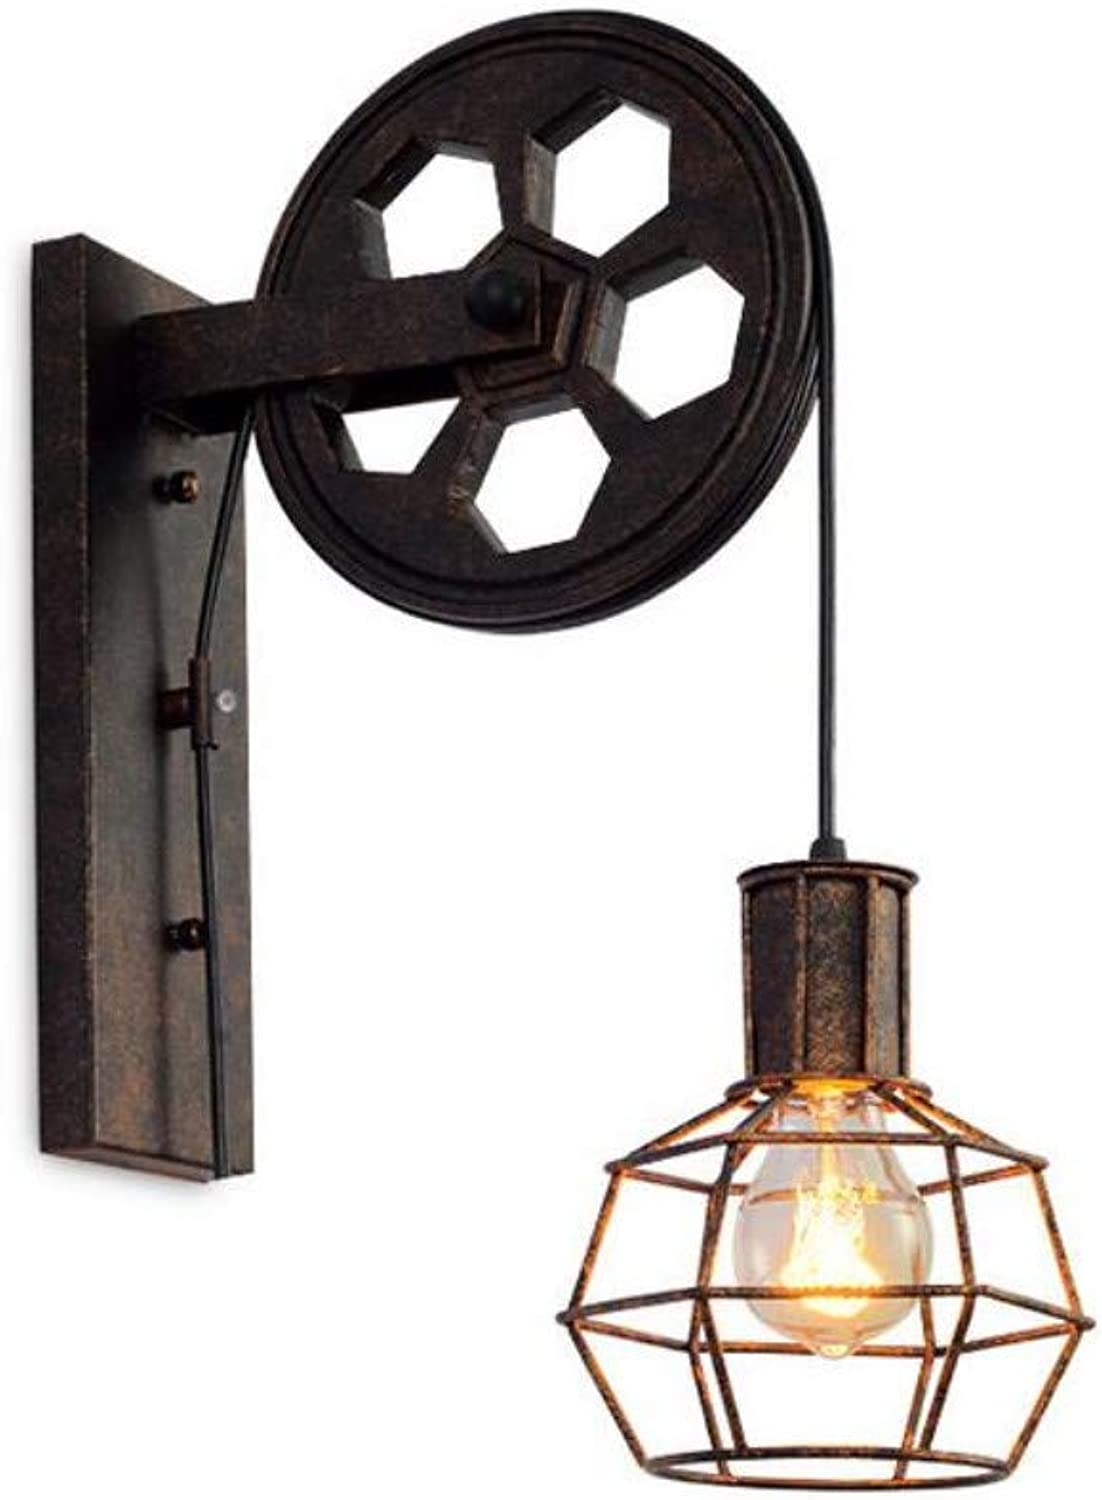 Wall Lamp Retro Industrial Wind Iron Lifting Wall Lamp Restaurant Staircase Corridor Pulley Wall Lampe